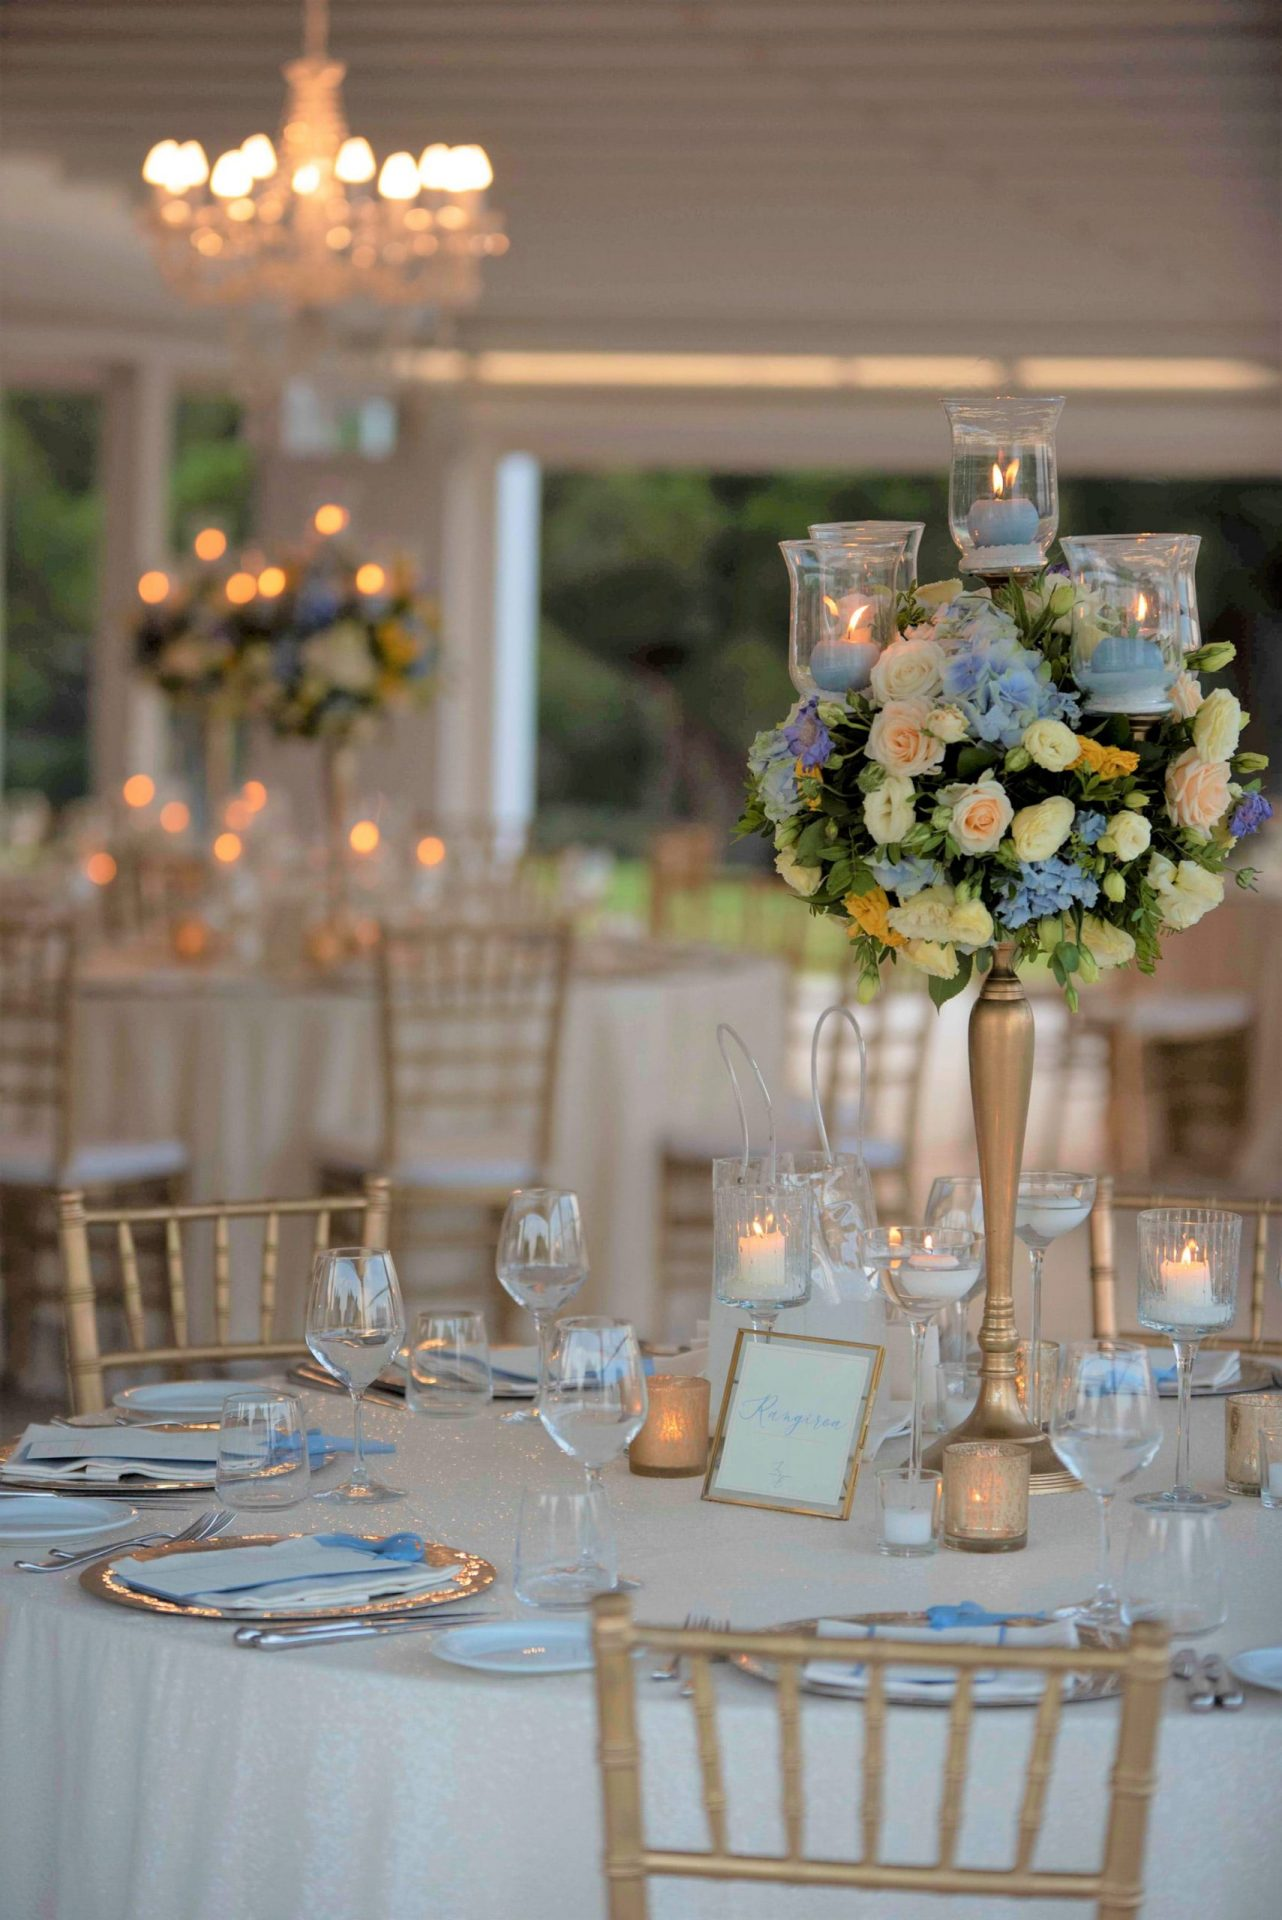 Linda and Enrico, sophisticated flowers centrepiece